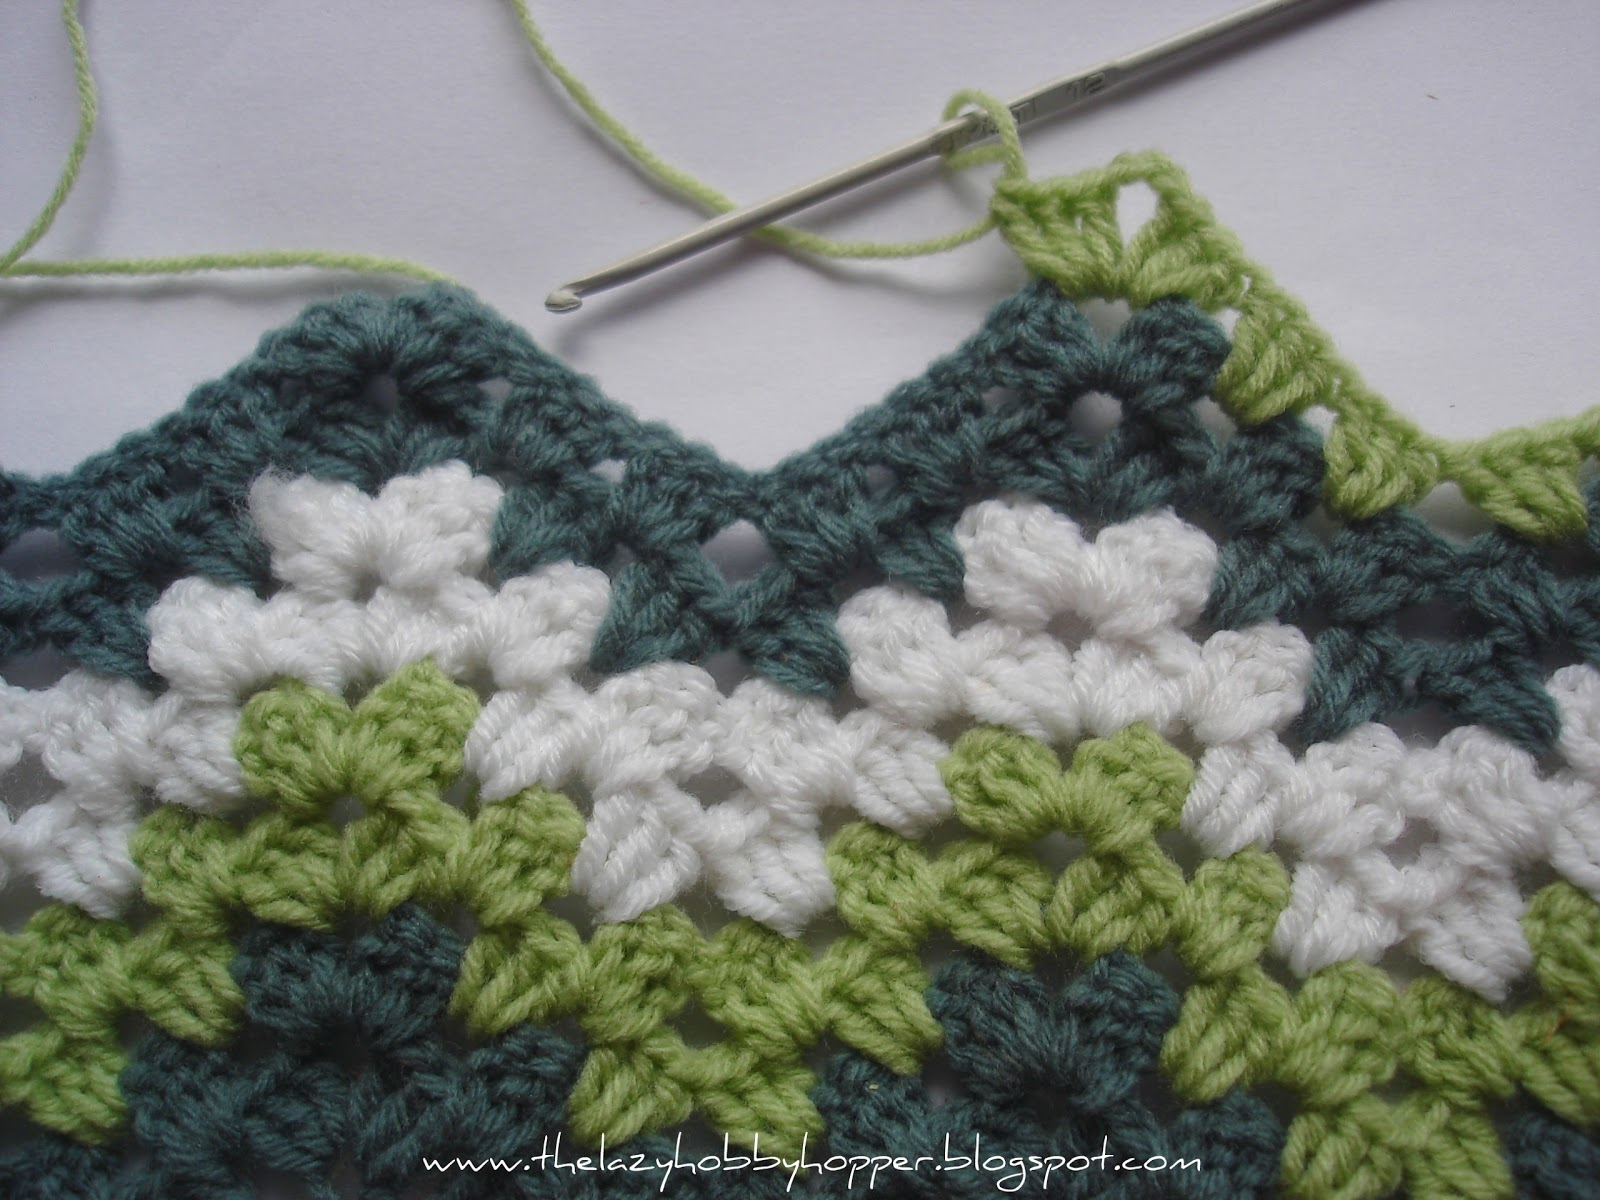 Crocheting How To : ... many of you who can crochet fairly well may not know how to crochet a